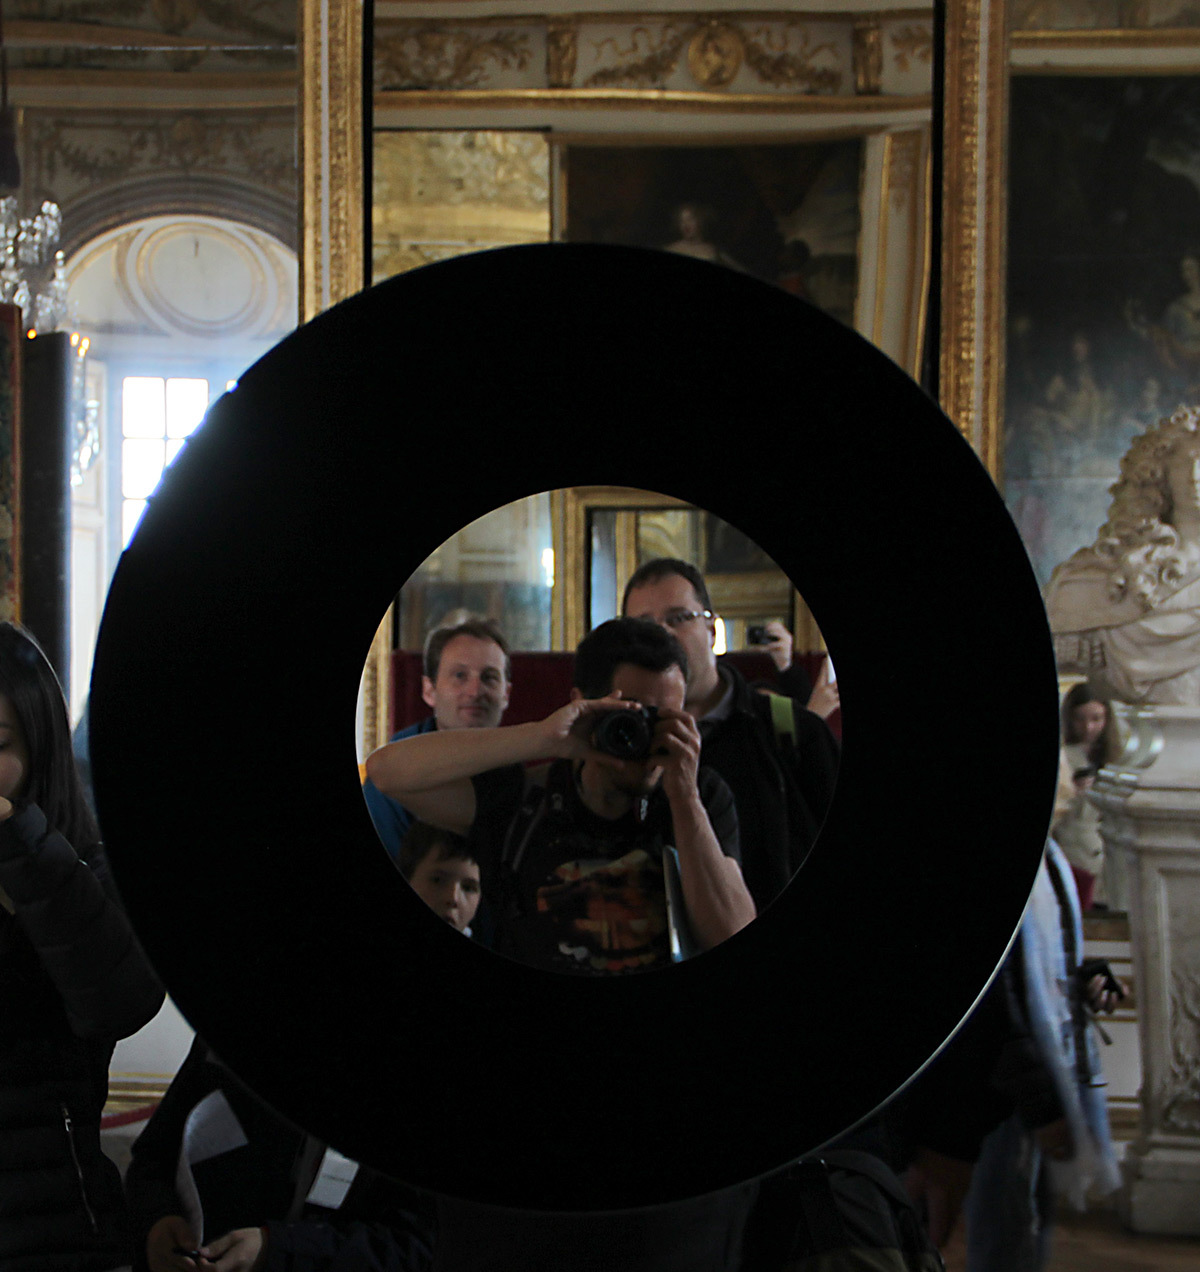 Olafur Eliasson, Deep mirror black, 2016 - Château de Versailles, France - Photo : Vincent Laganier